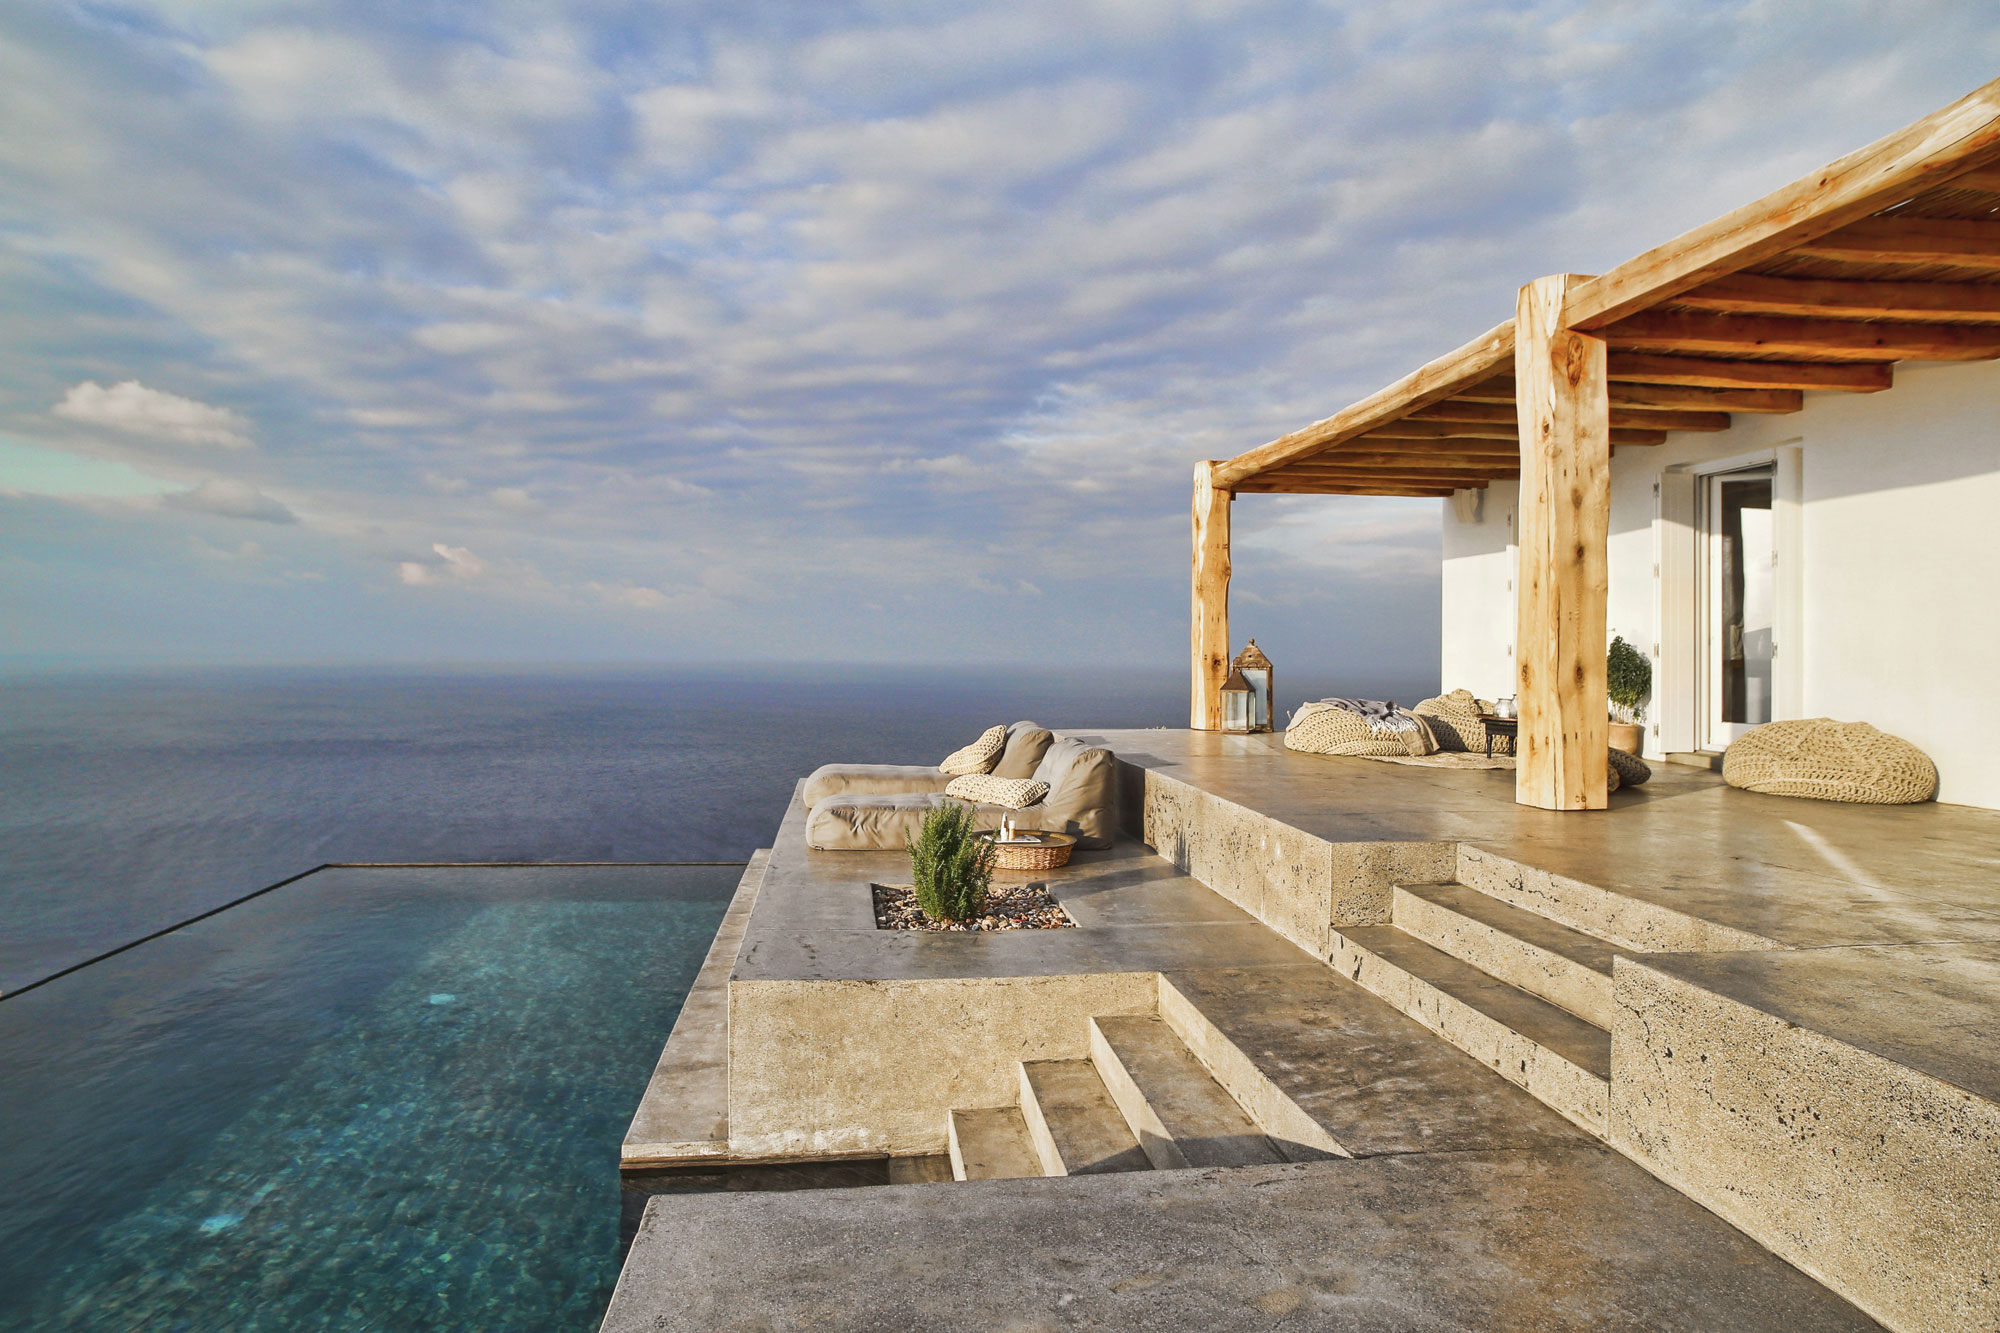 Residence in Syros I by Block722 (2)